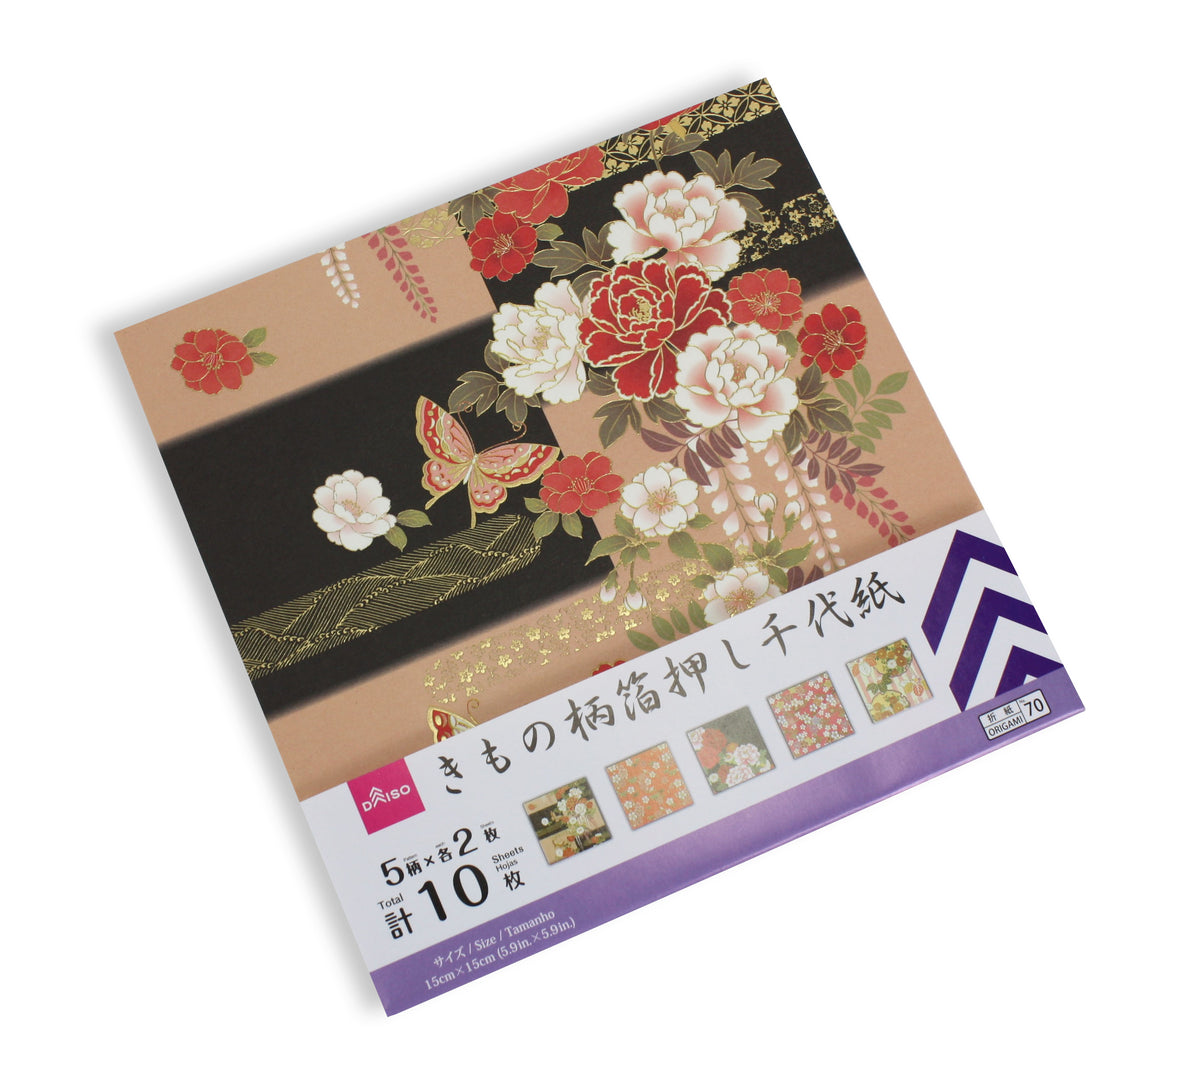 Chiyogami Origami Paper: 5 Floral Kimono Designs. Total 10 Sheets. - farangshop-co